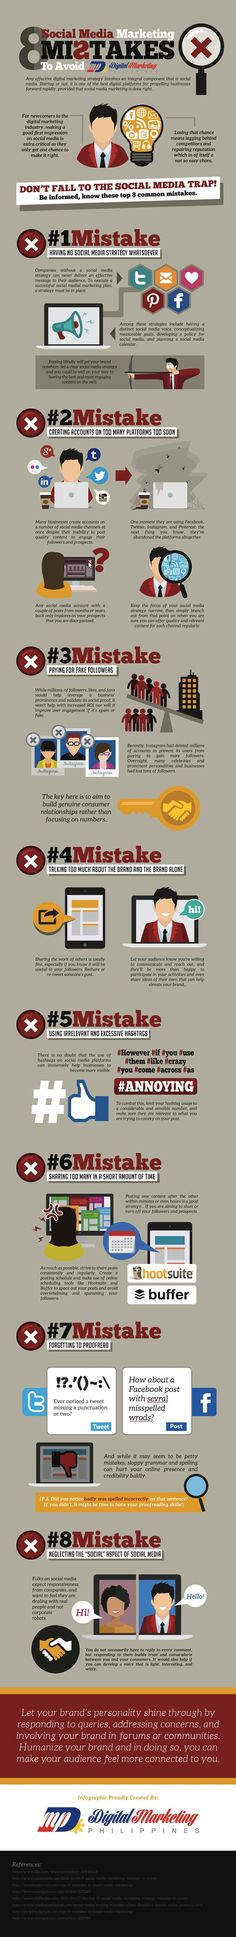 8-Social-Media-Marketing-Mistakes-to-Avoid  http://www.adweek.com/socialtimes/8-social-media-marketing-mistakes-to-avoid-infographic/623398